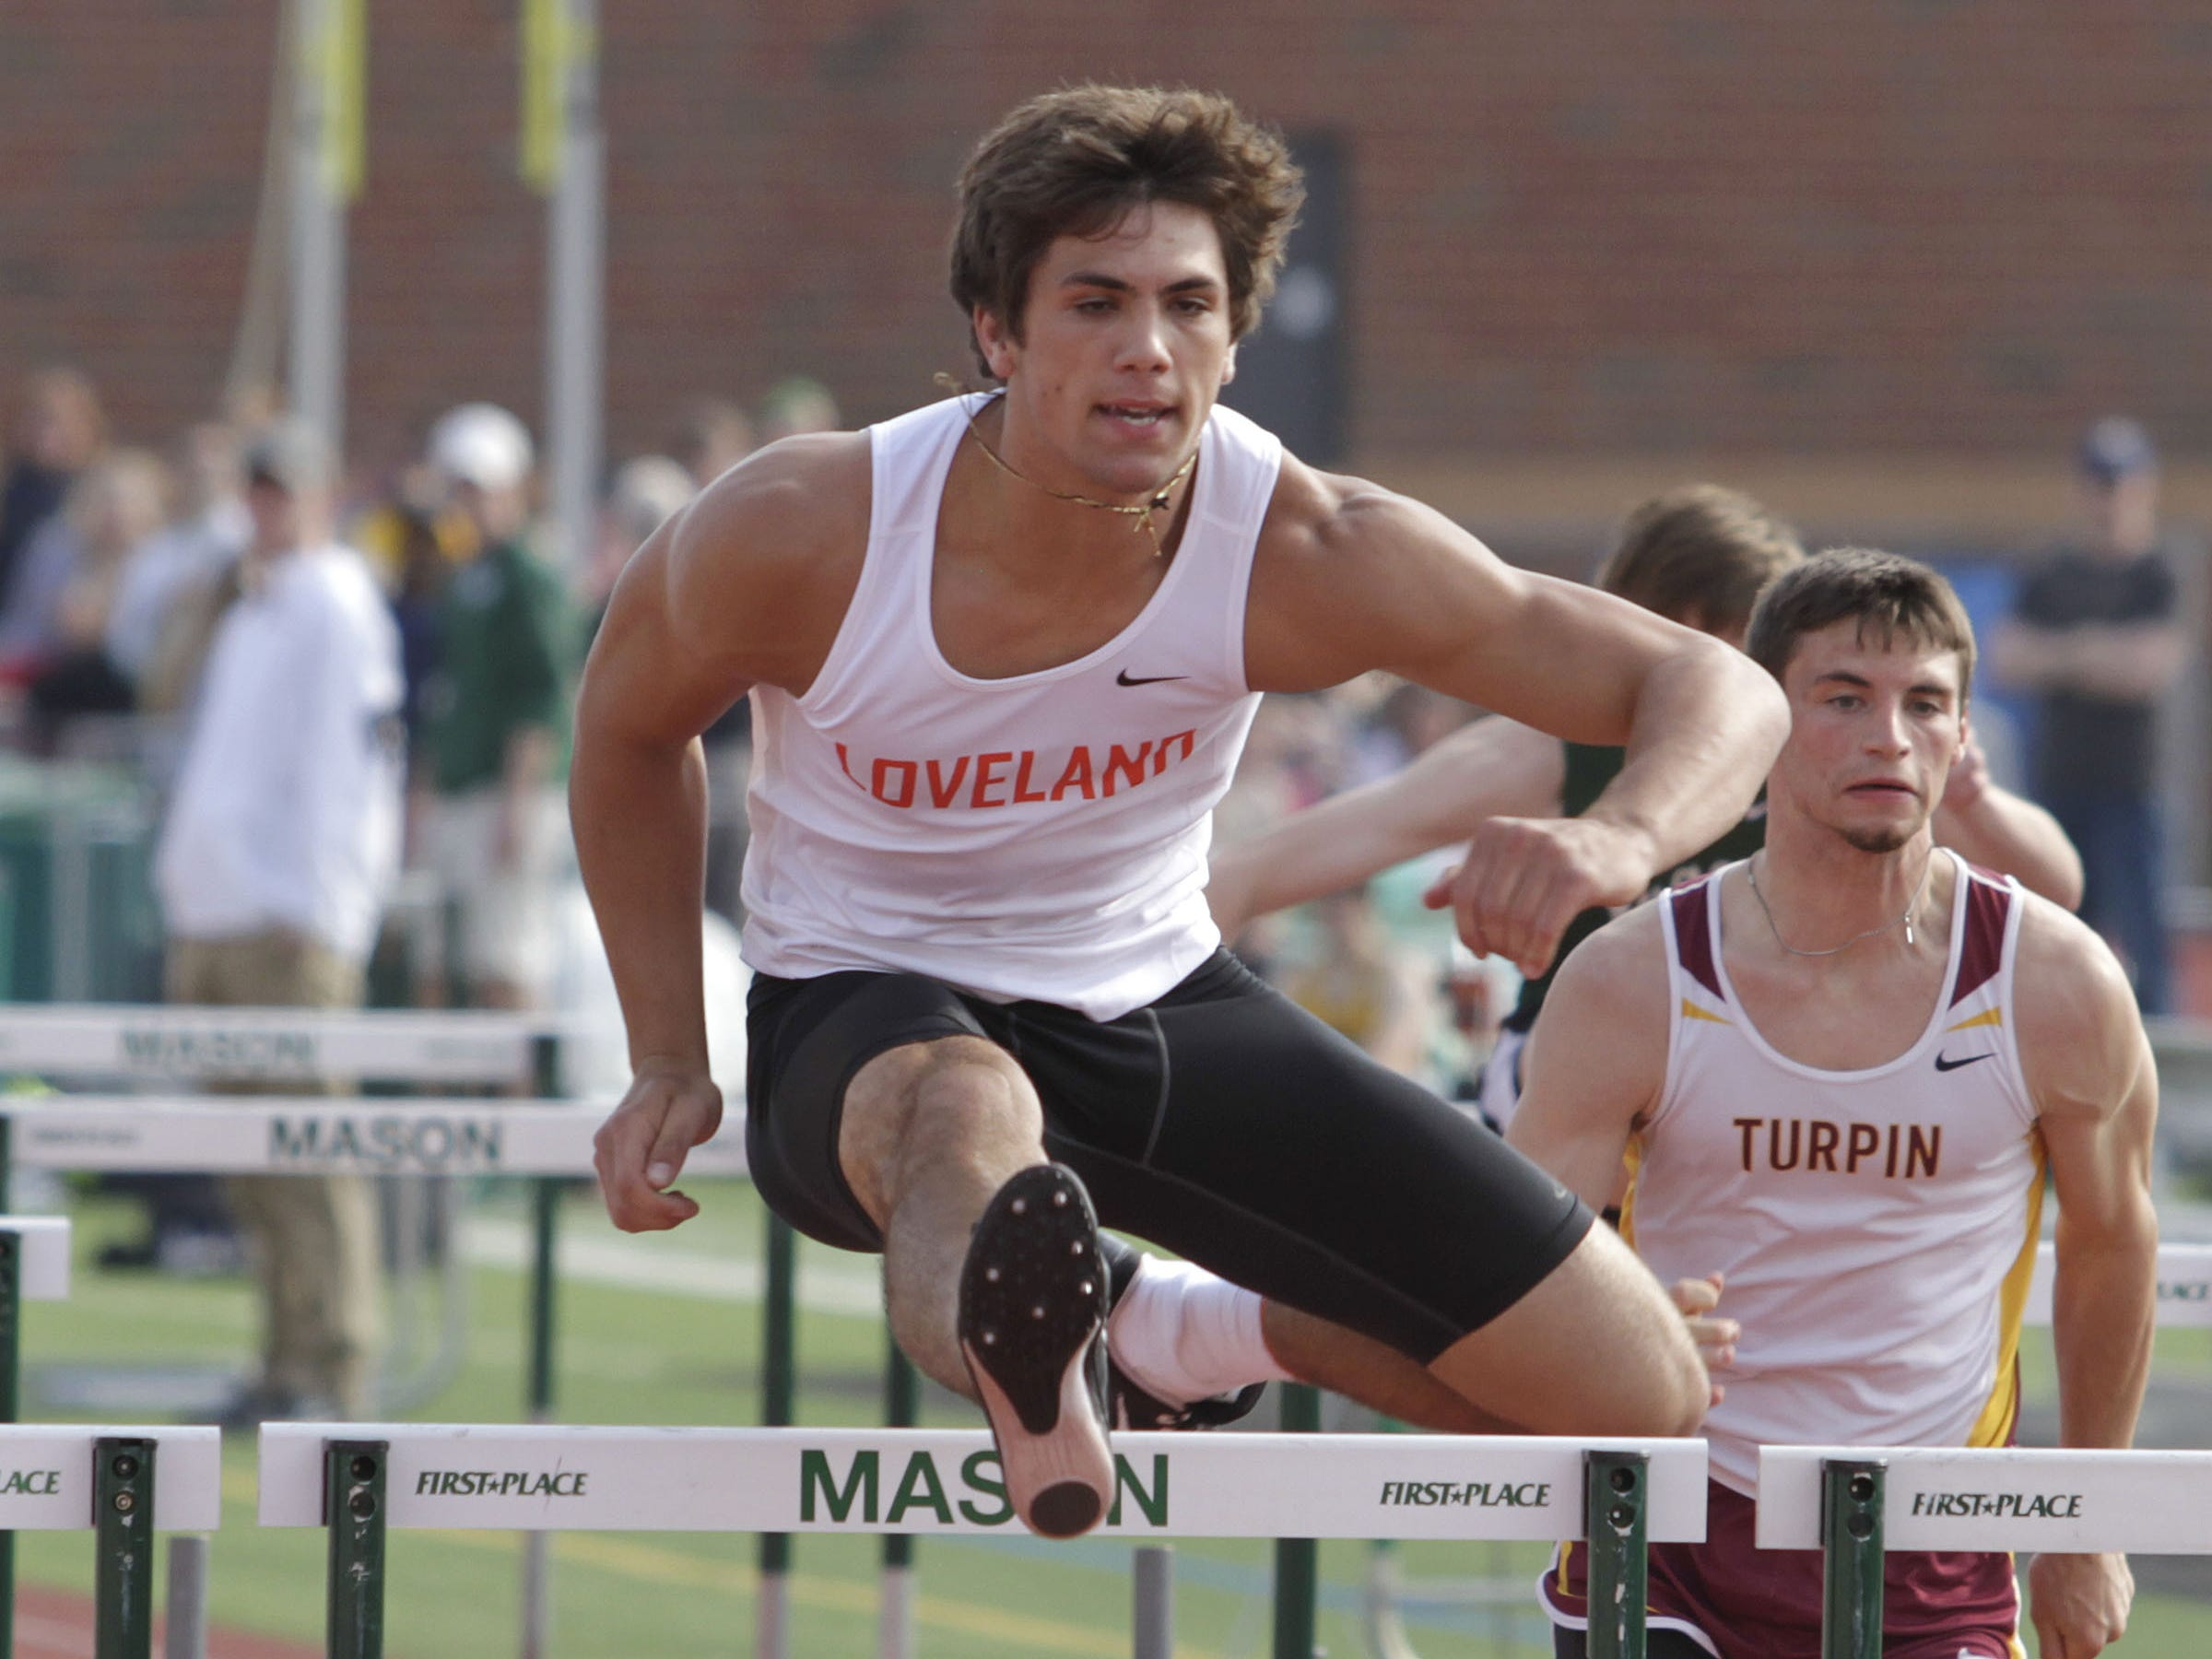 Giovanni Ricci of Loveland breezes to a first-place finish in the 110 meter hurdles for the Tigers.